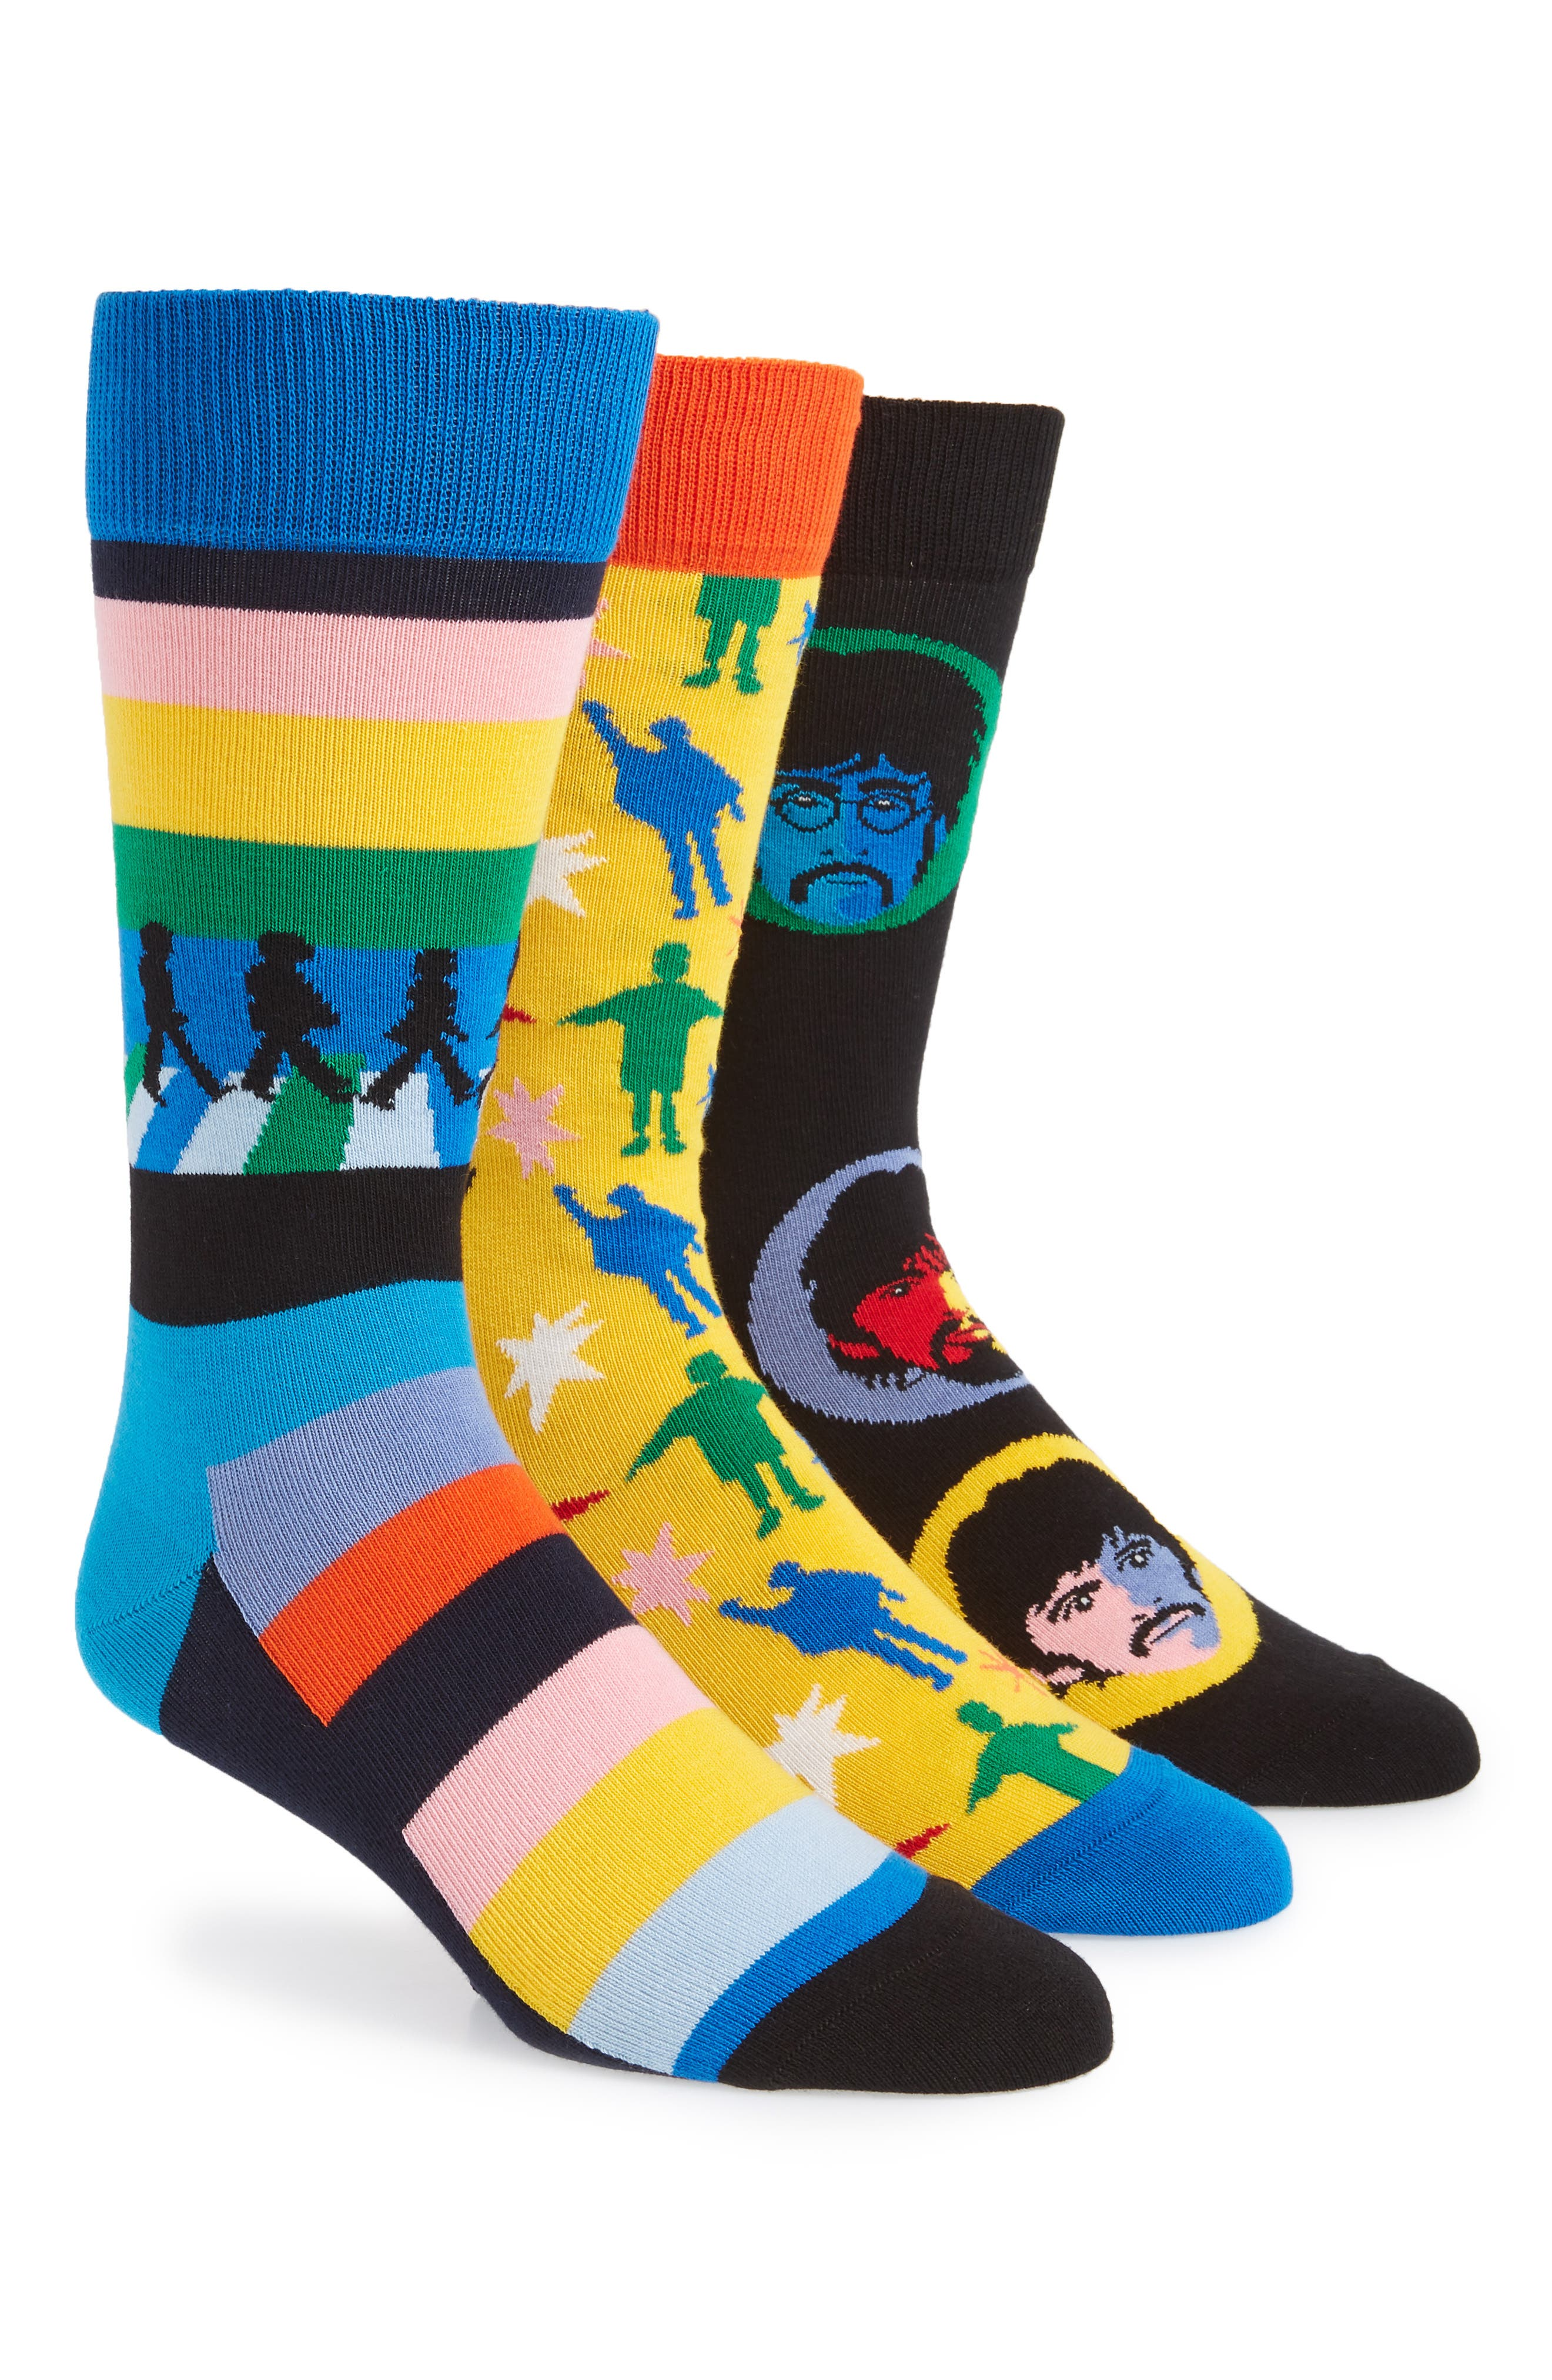 The Beatles Encore Edition 3-Pack Sock Gift Set